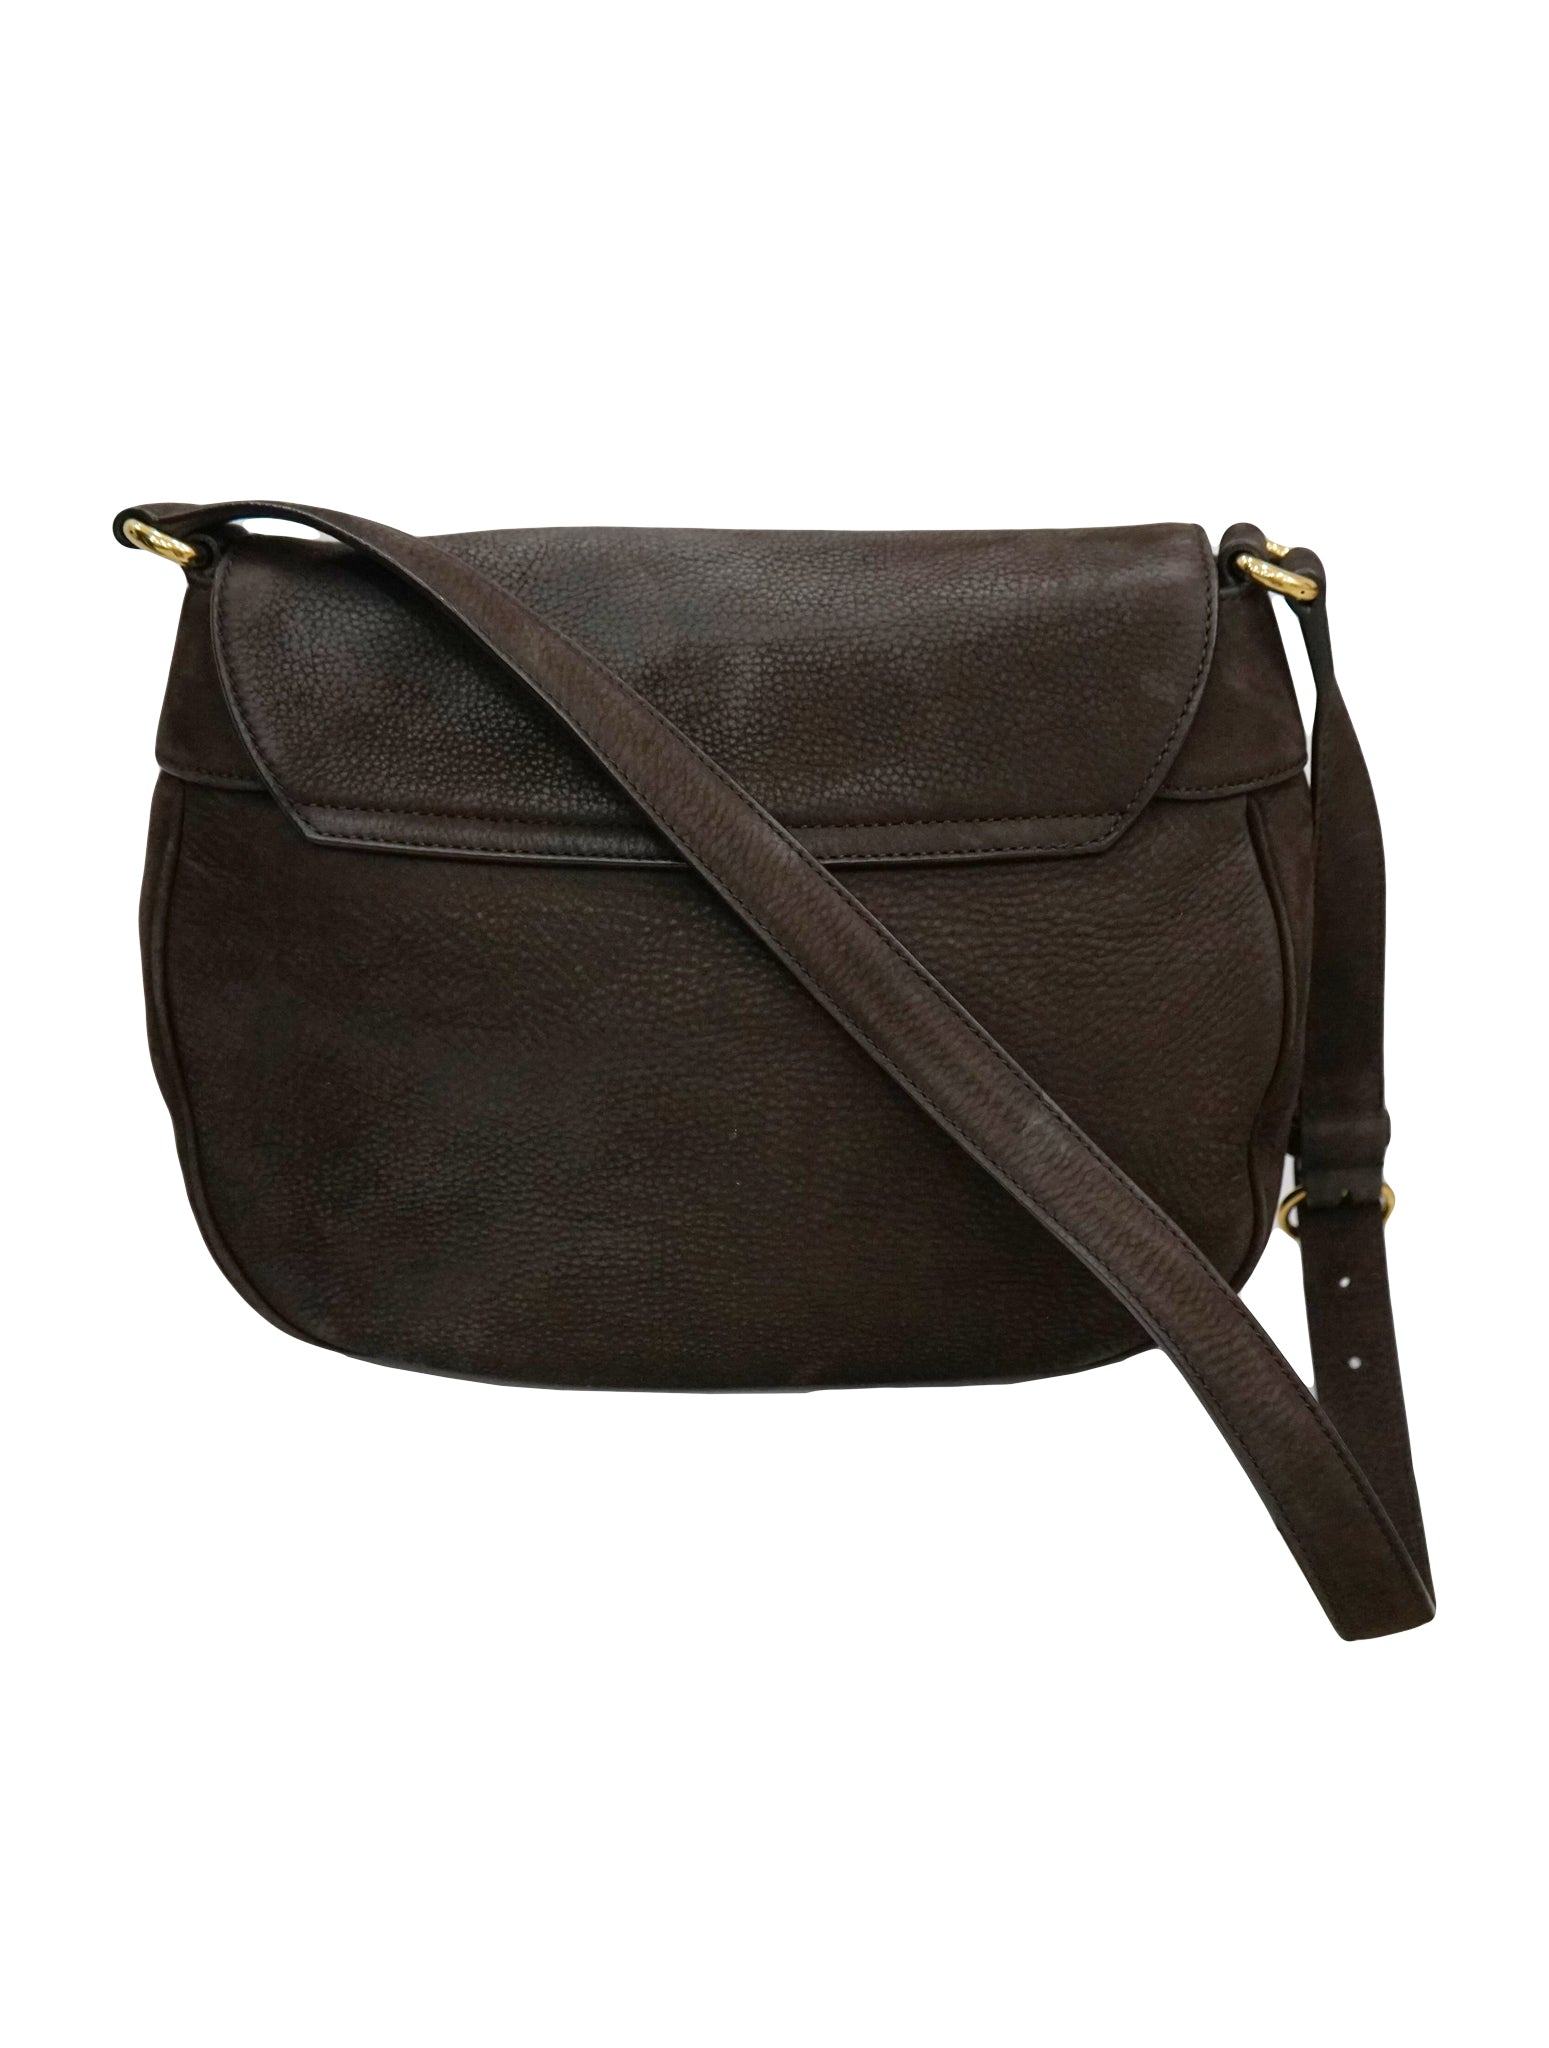 NUBUCK LEATHER RIBOT HORSE HEAD FLAP BAG